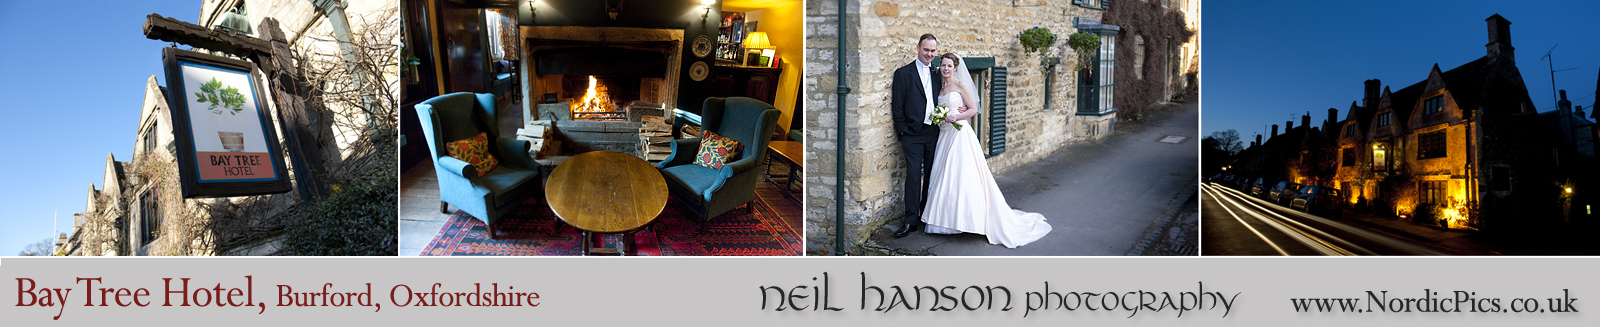 Neil Hanson Photography provides contemporary Wedding Photography for The Bay Tree Hotel, Burford